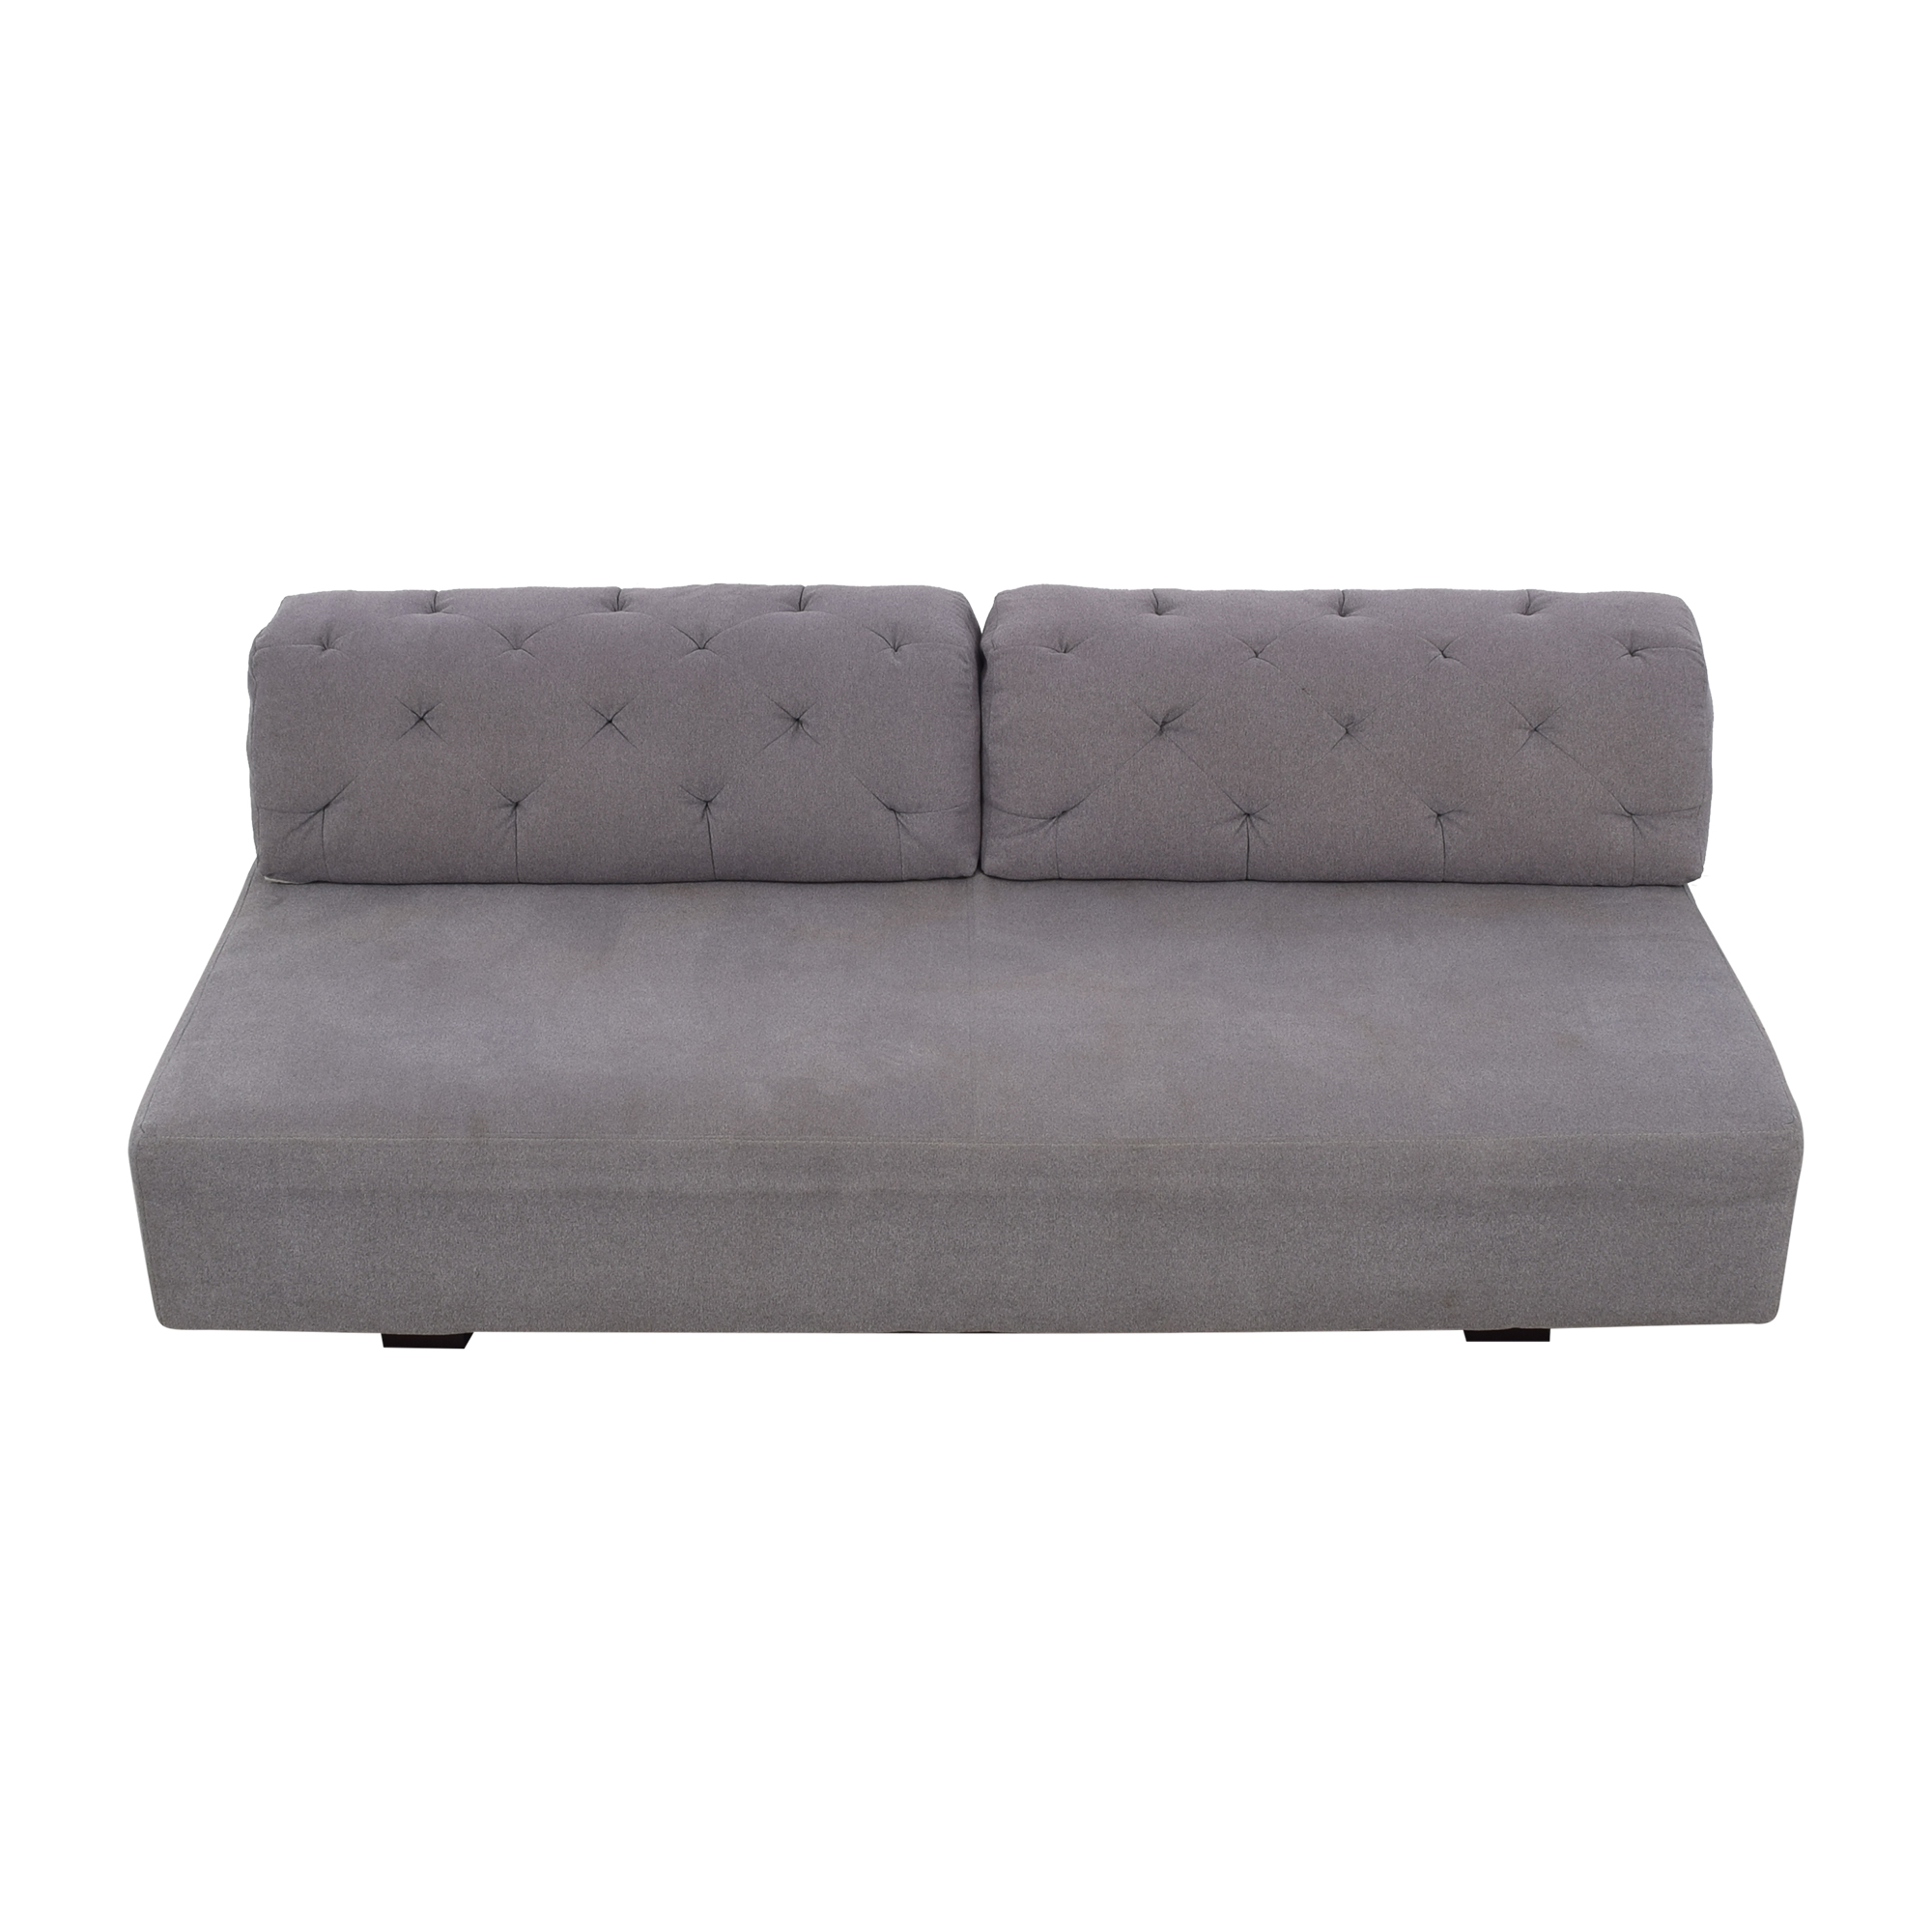 West Elm West Elm Tillary Sofa with Tufted Back Cushions gray